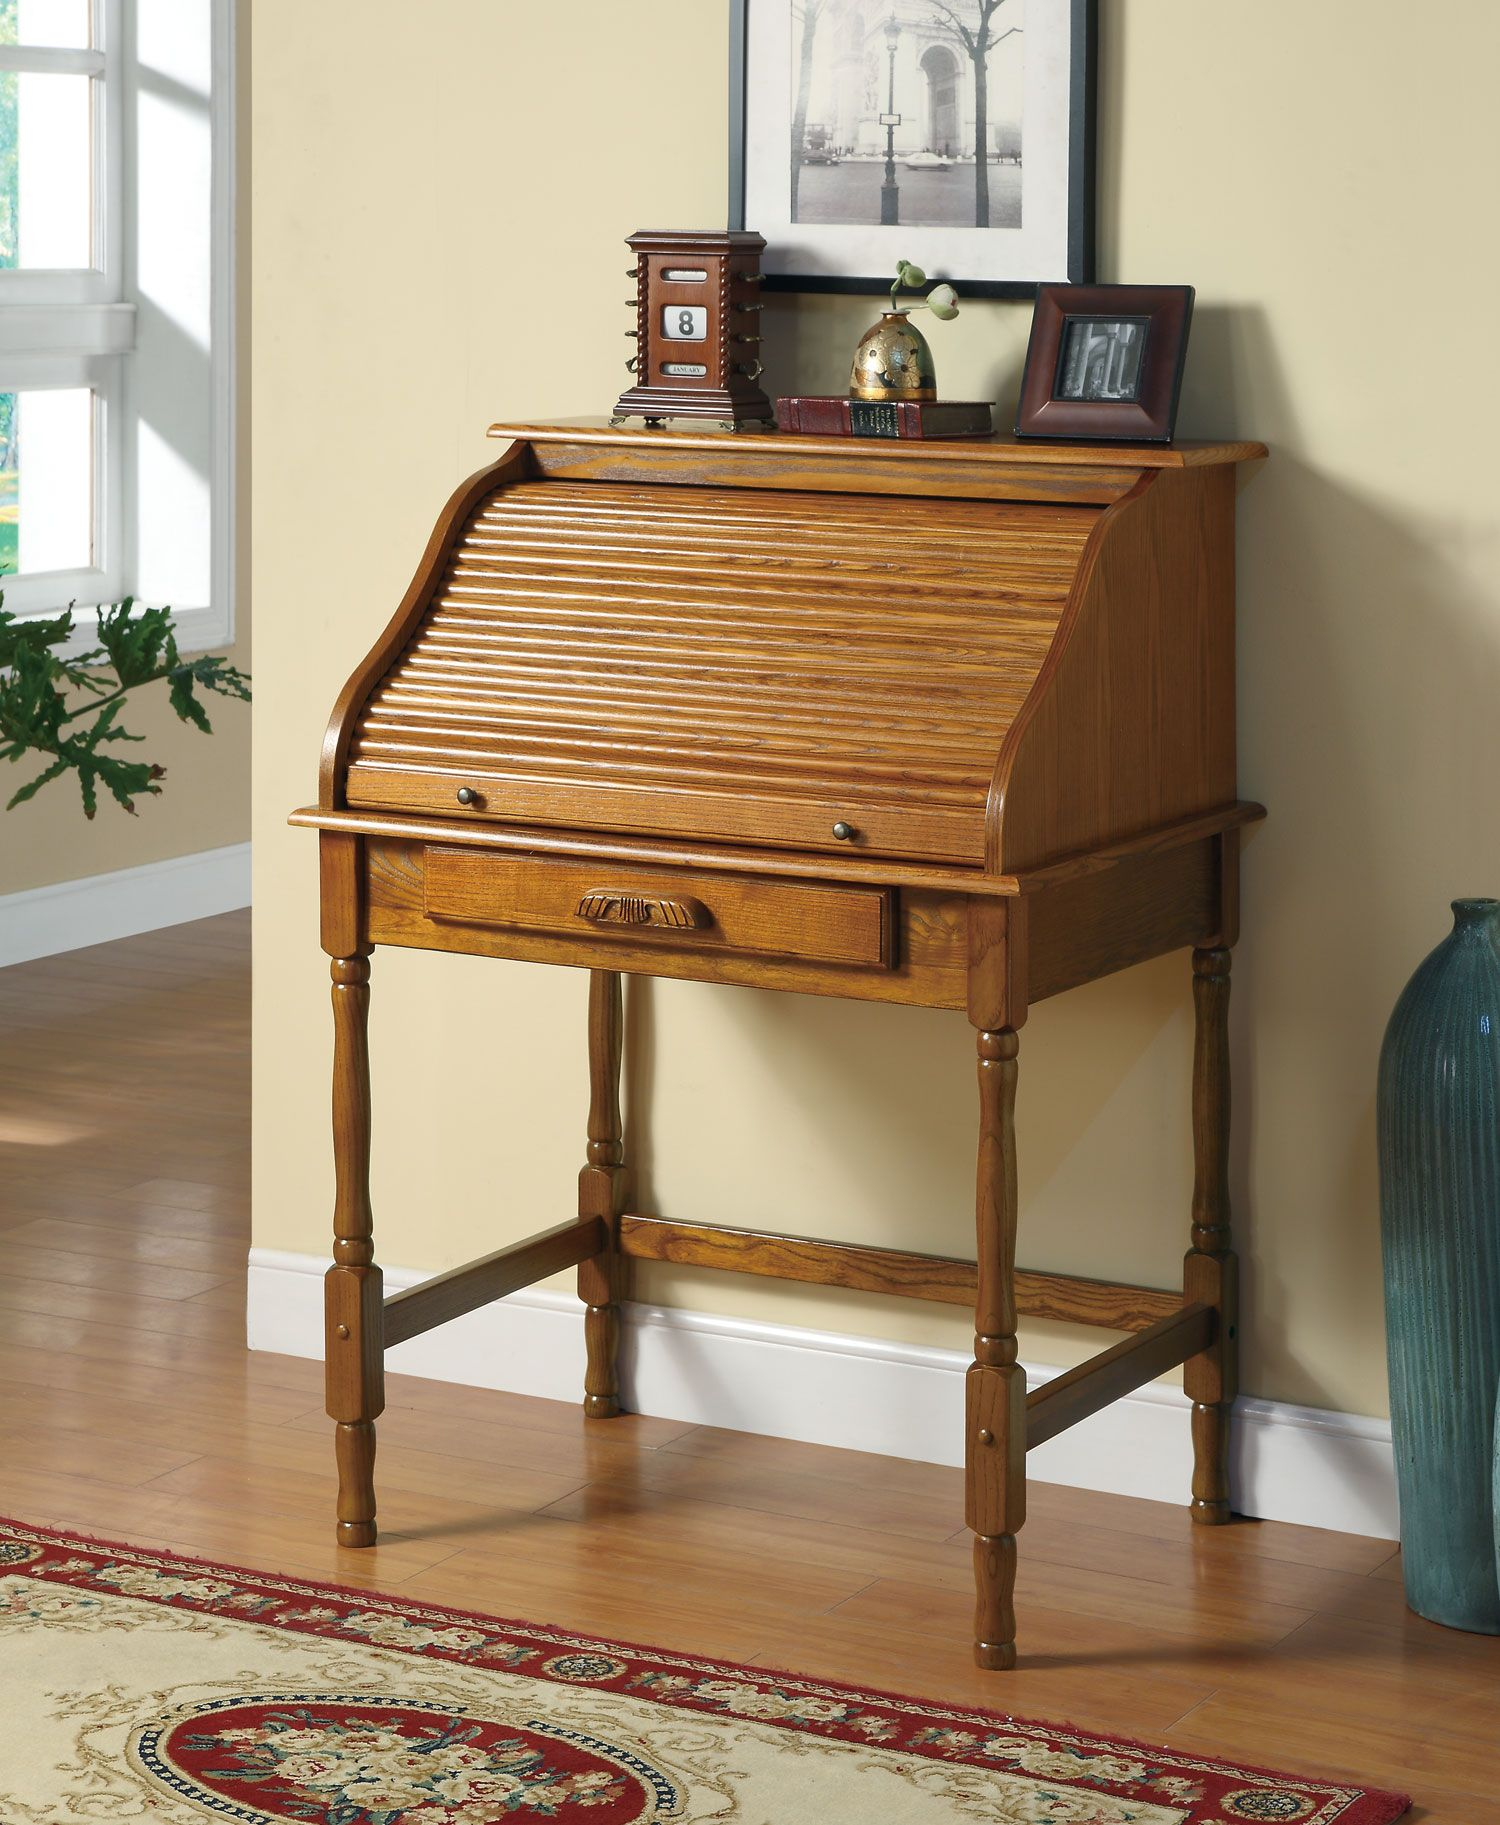 f209ad3cc577 Small Oak Roll Top Desk